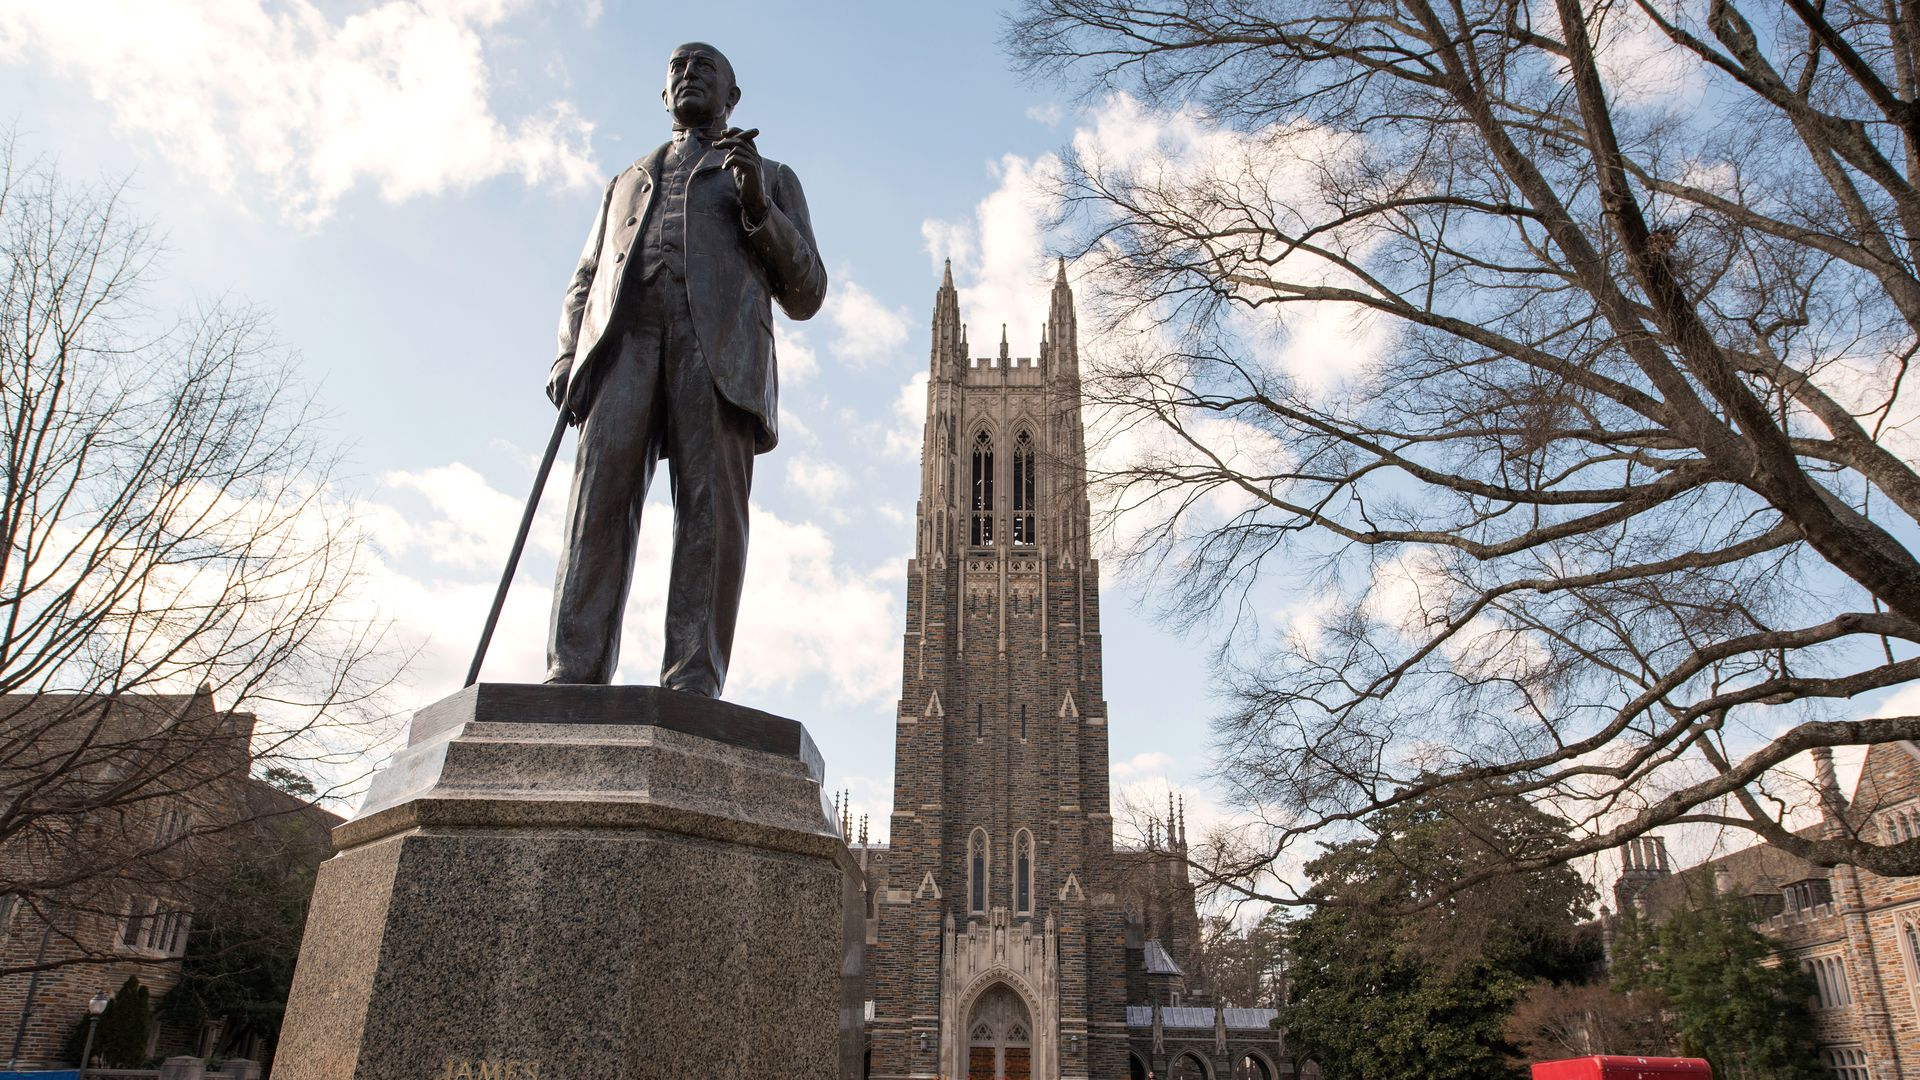 Duke statue before chapel on campus.